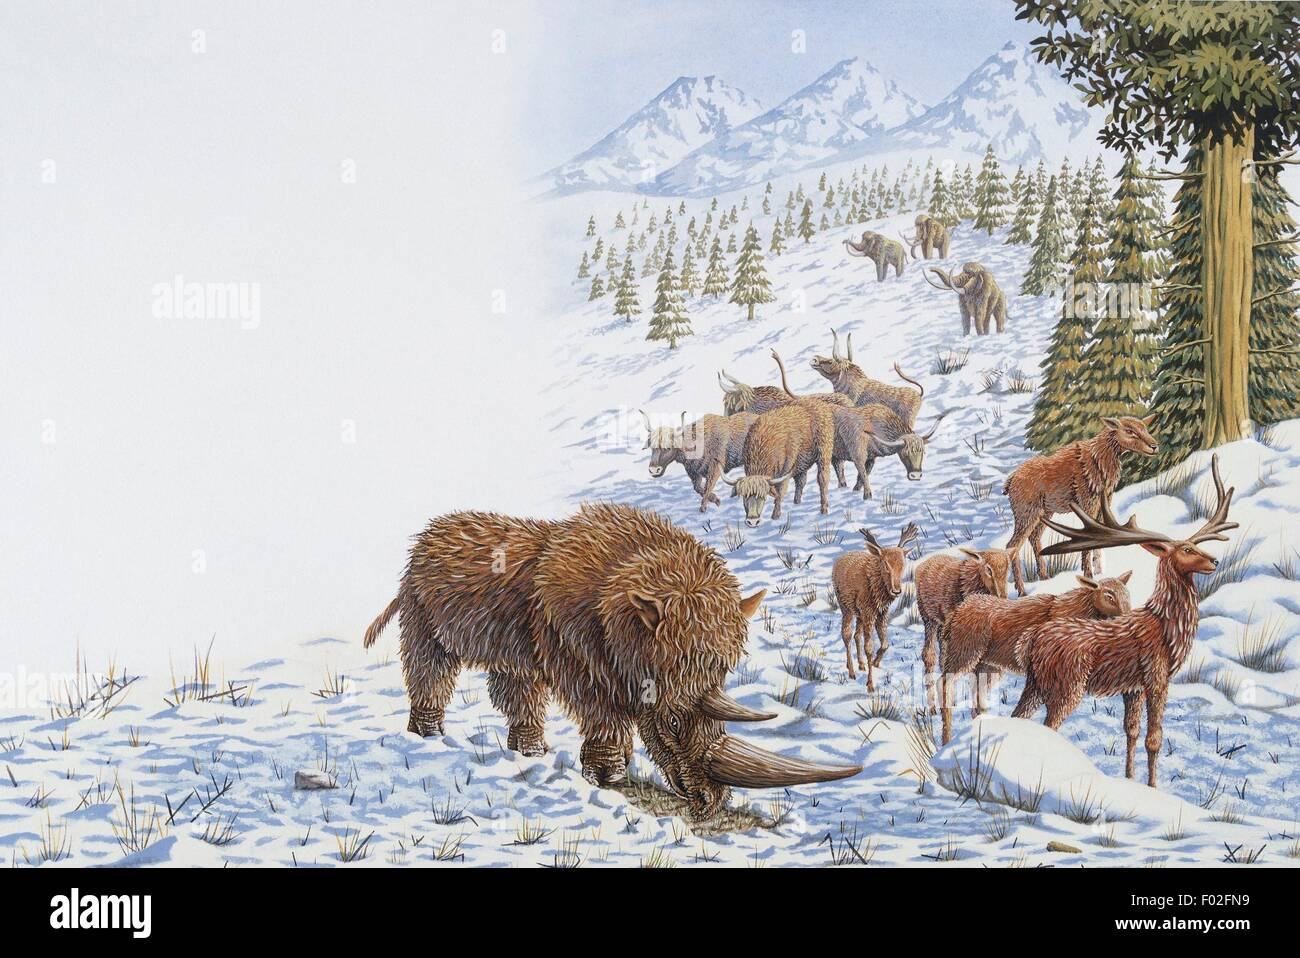 Animals of the Ice Age. Artwork by Mark Stewart. - Stock Image